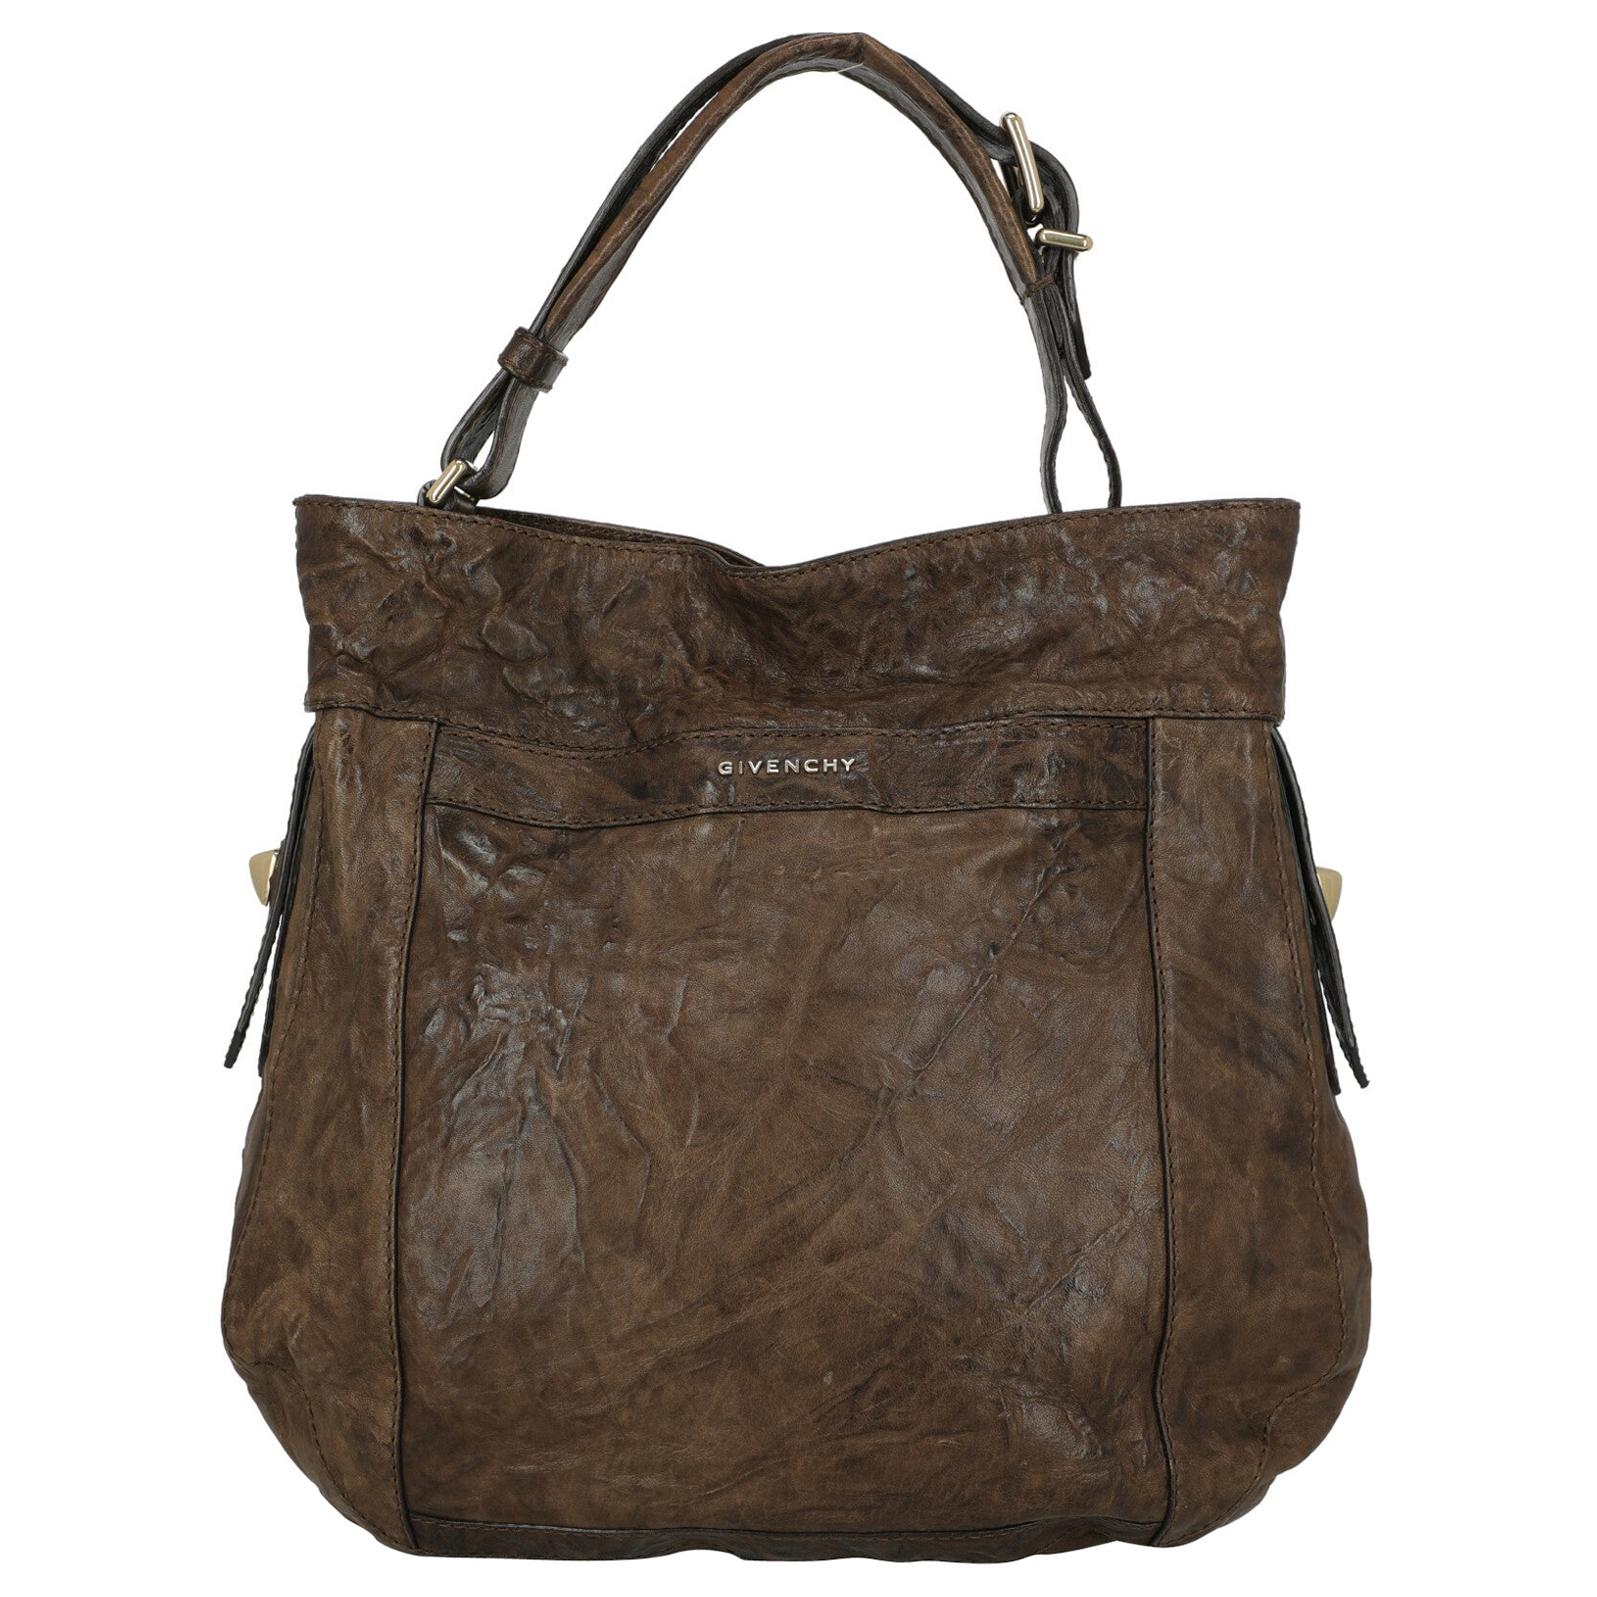 Givenchy Woman Shoulder bag  Brown Leather